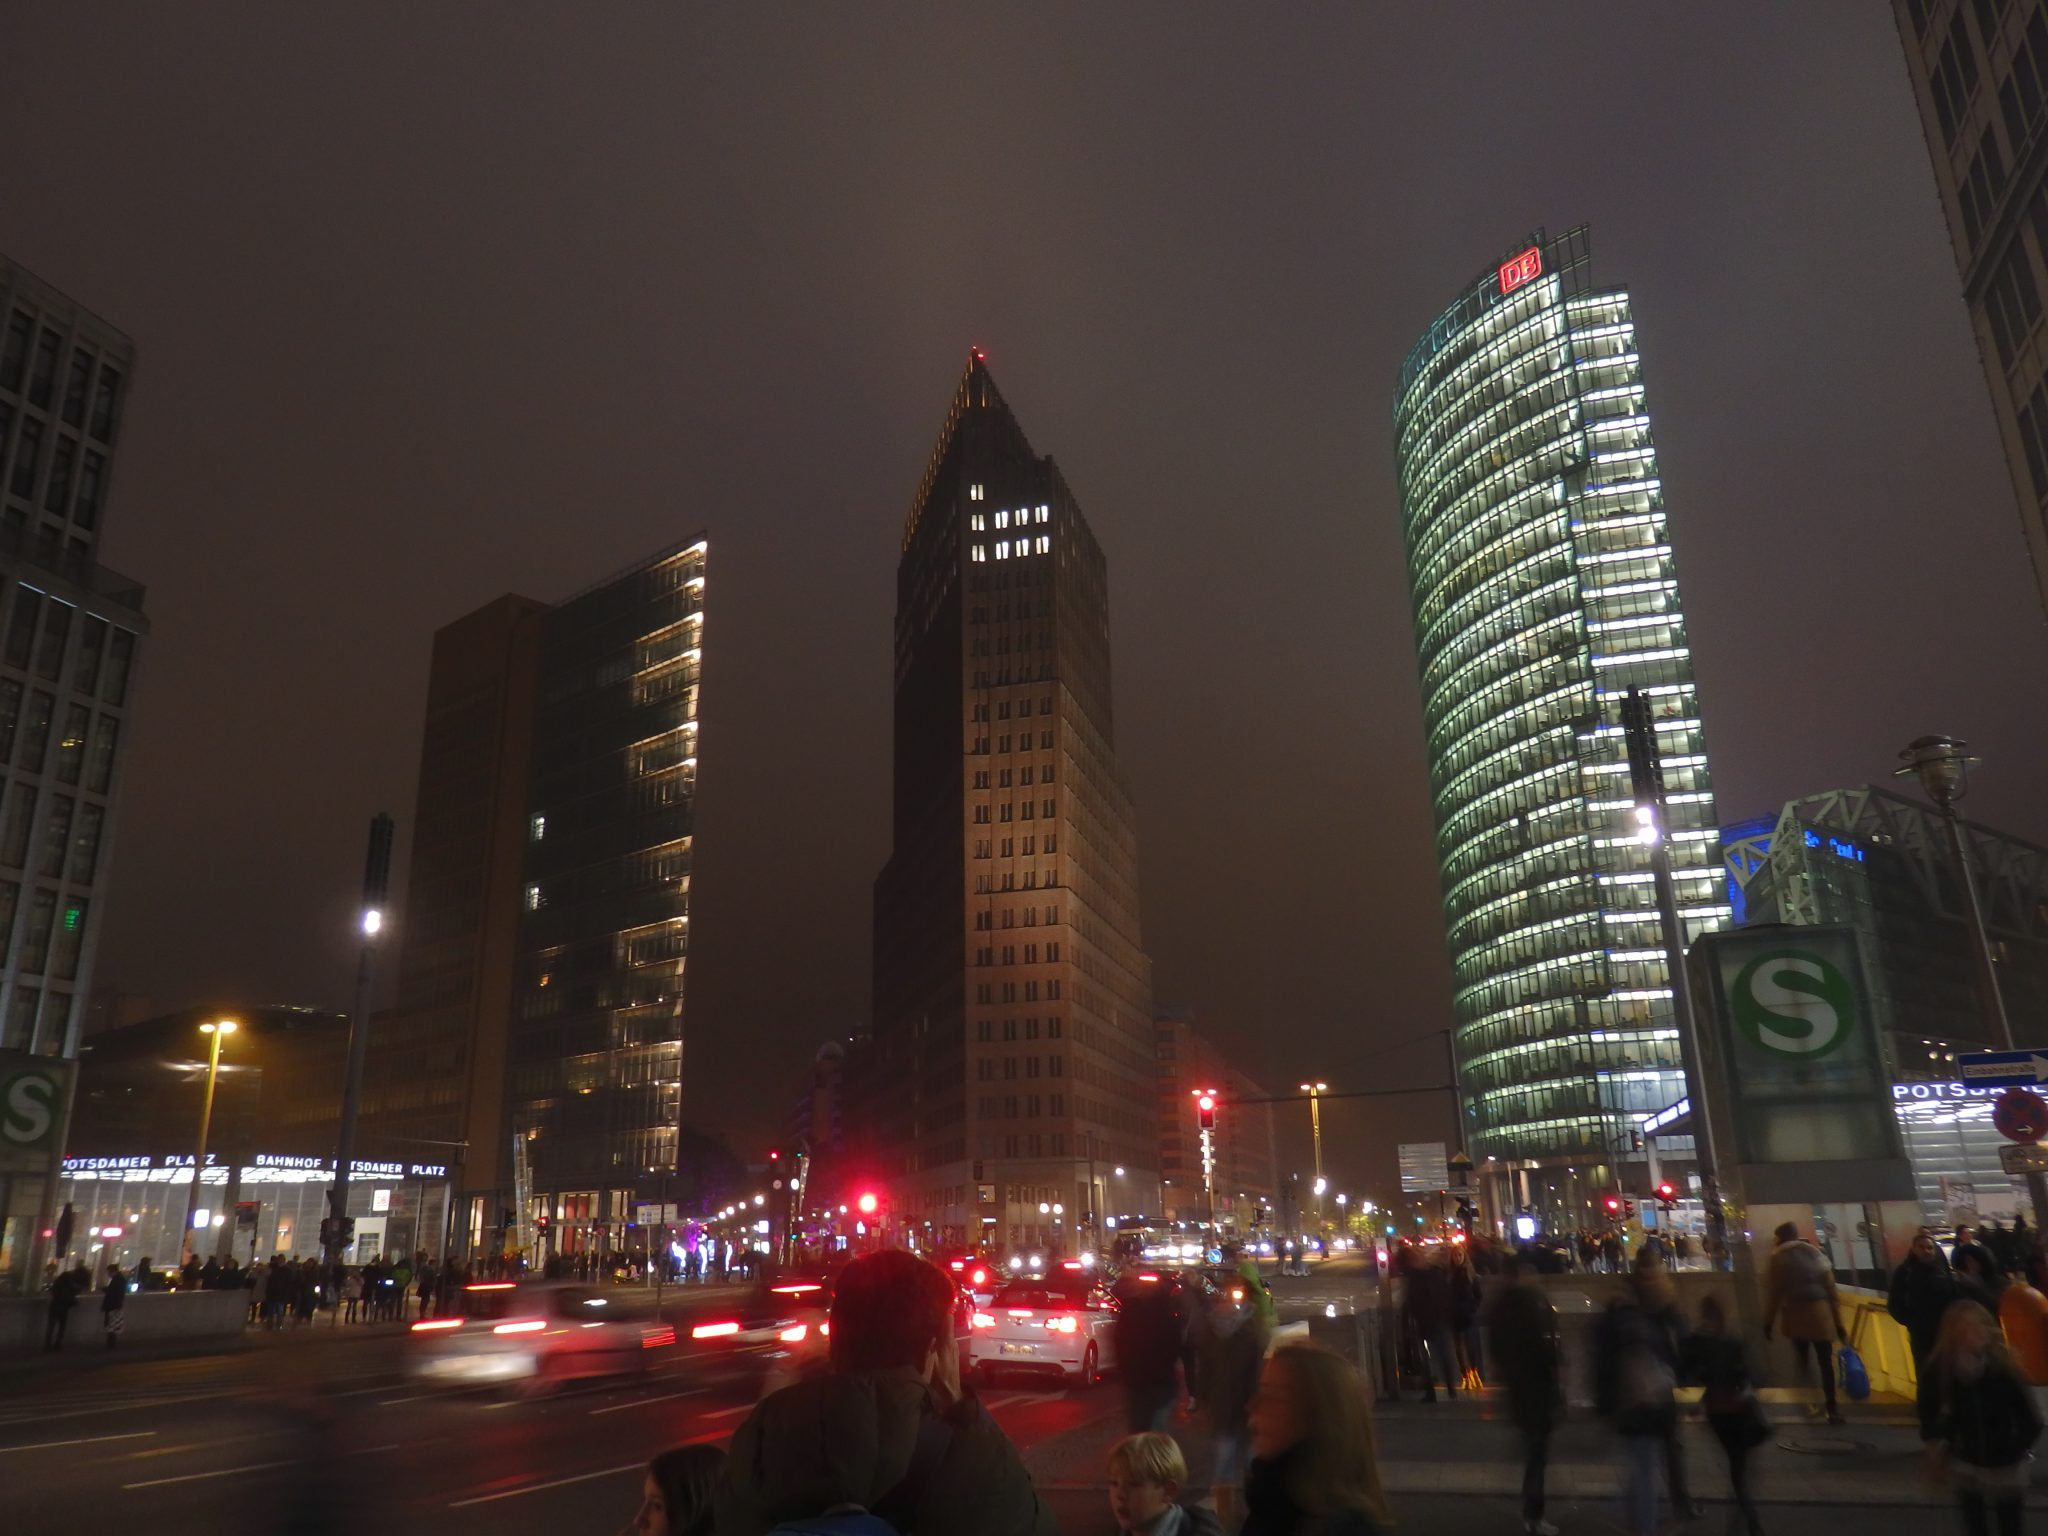 A view of Potsdamer Platz at night